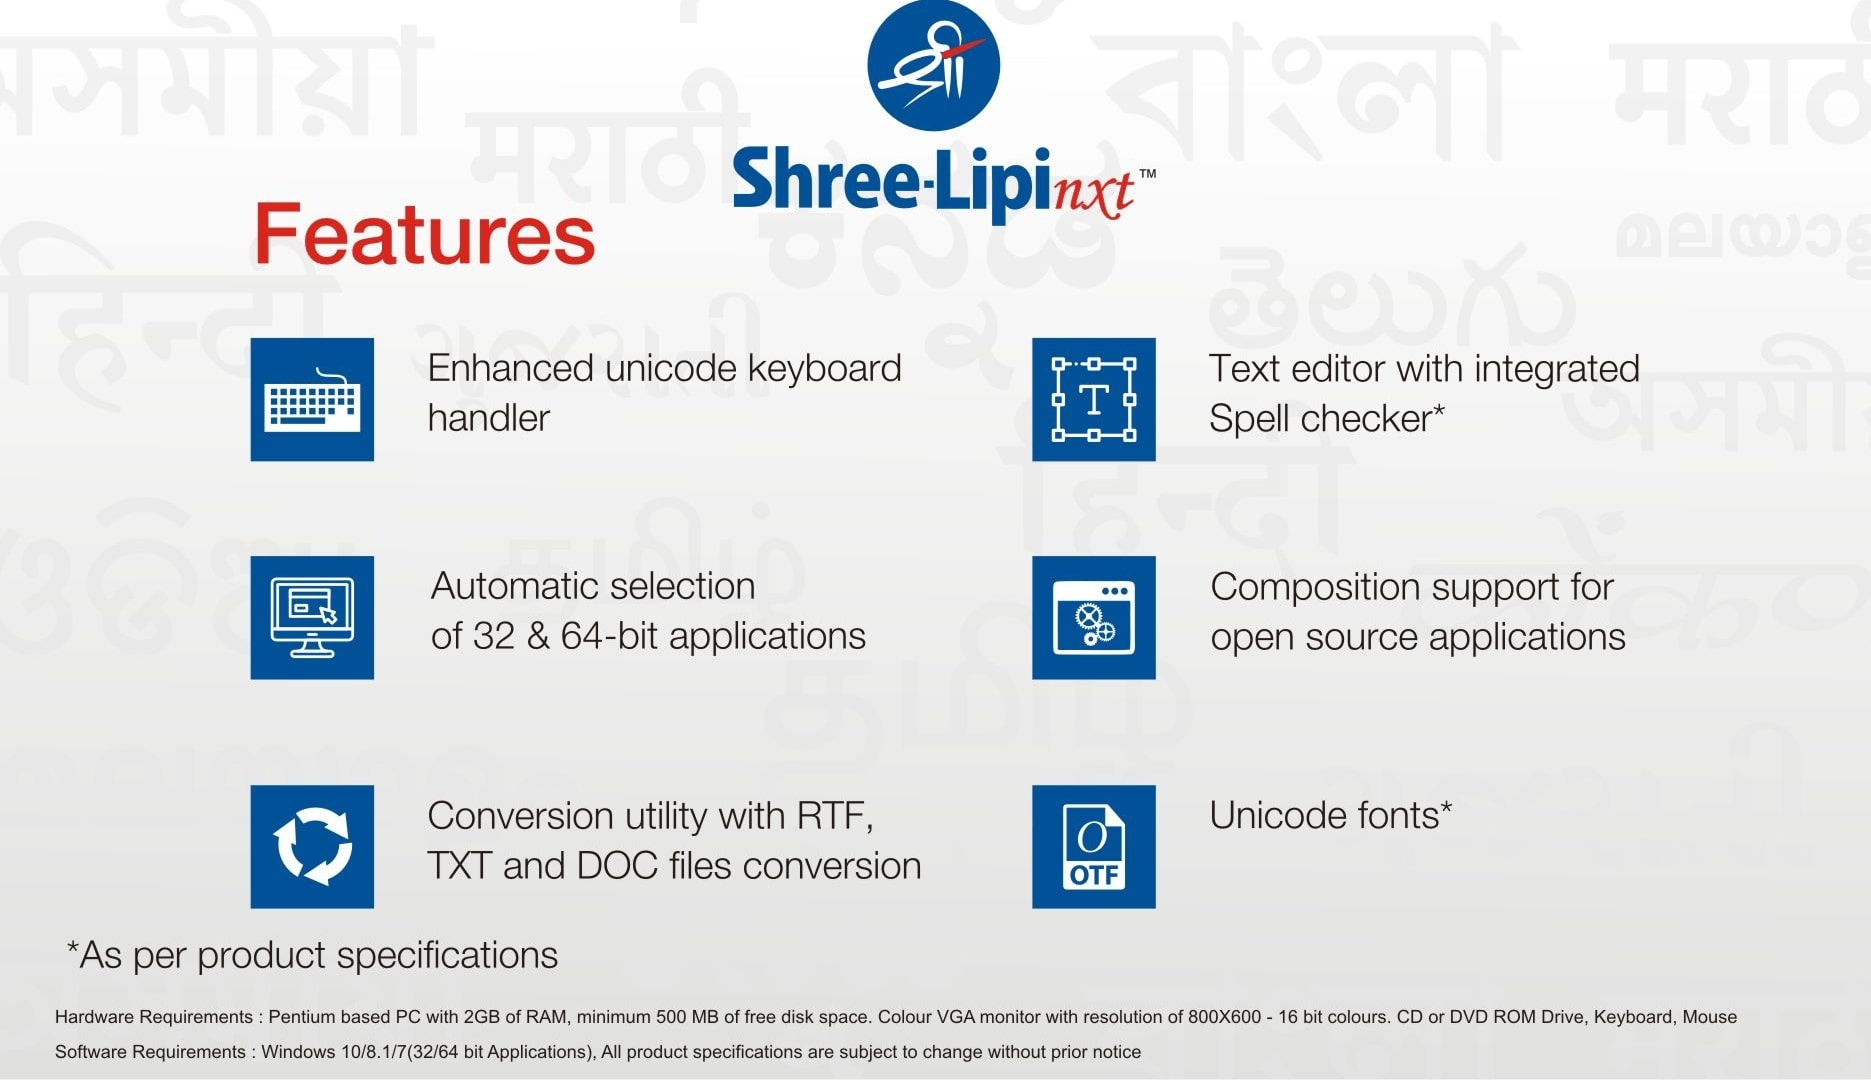 Main Features Of Shree-Lipi